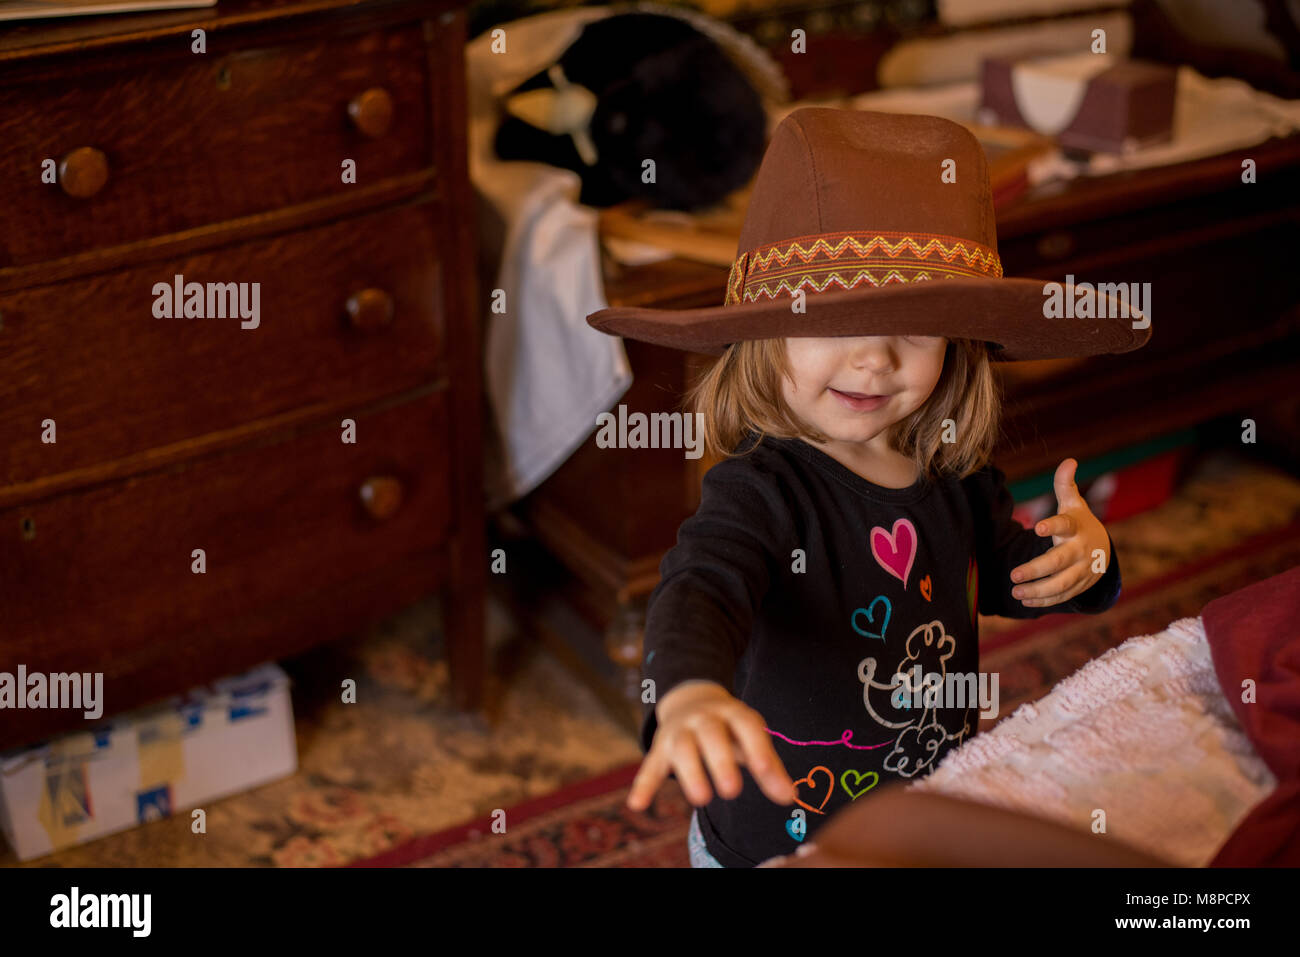 Little girl wearing a cowboy hat. - Stock Image